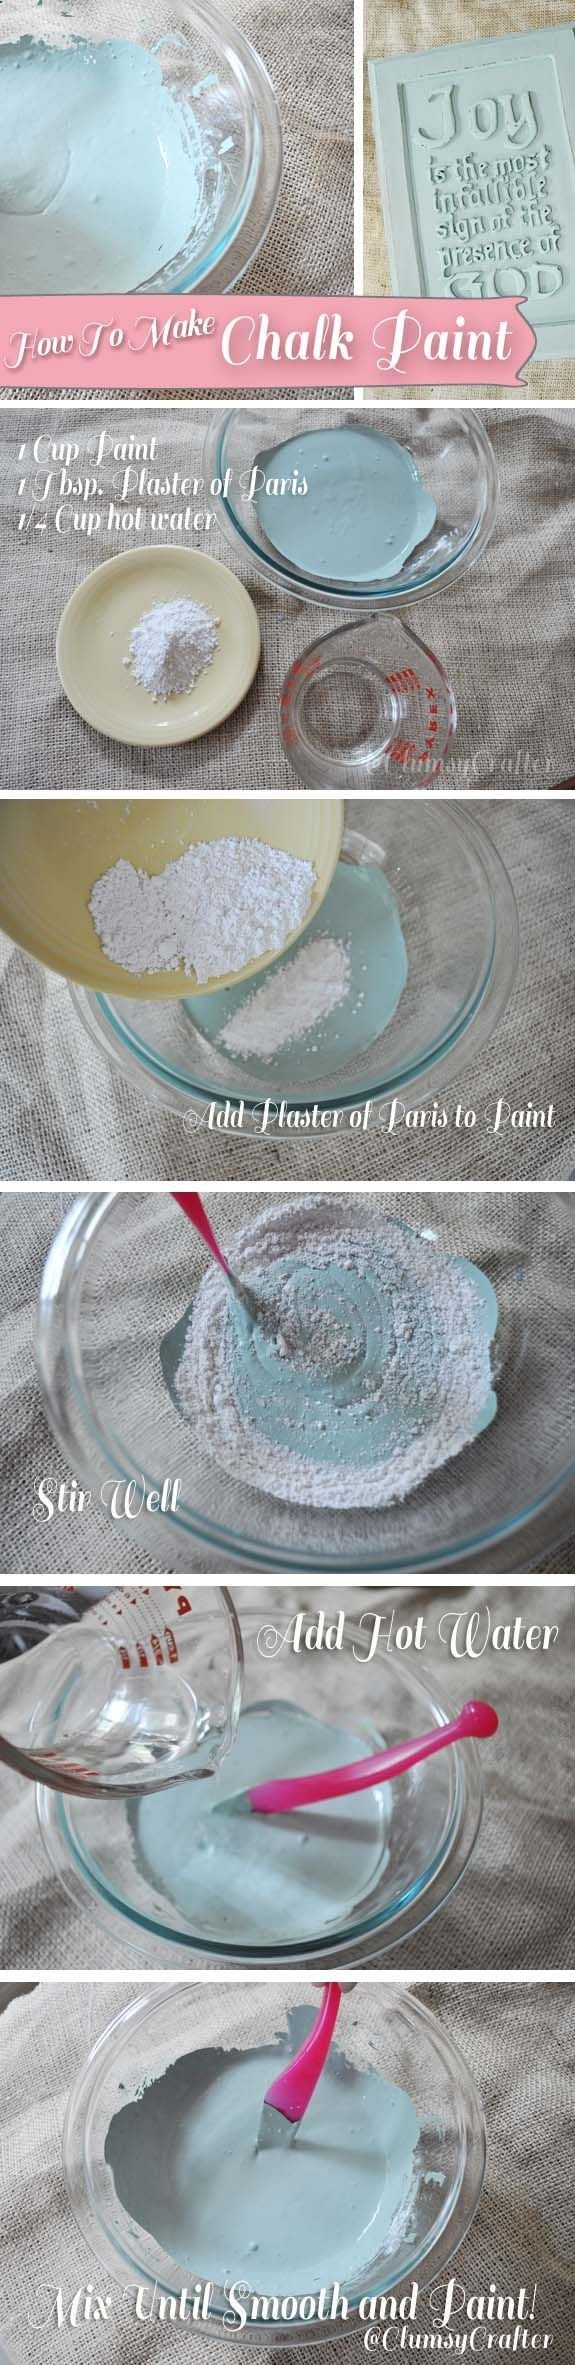 How to Make Chalk Paint - Not the chalkboard type of paint, it's like Annie Sloan